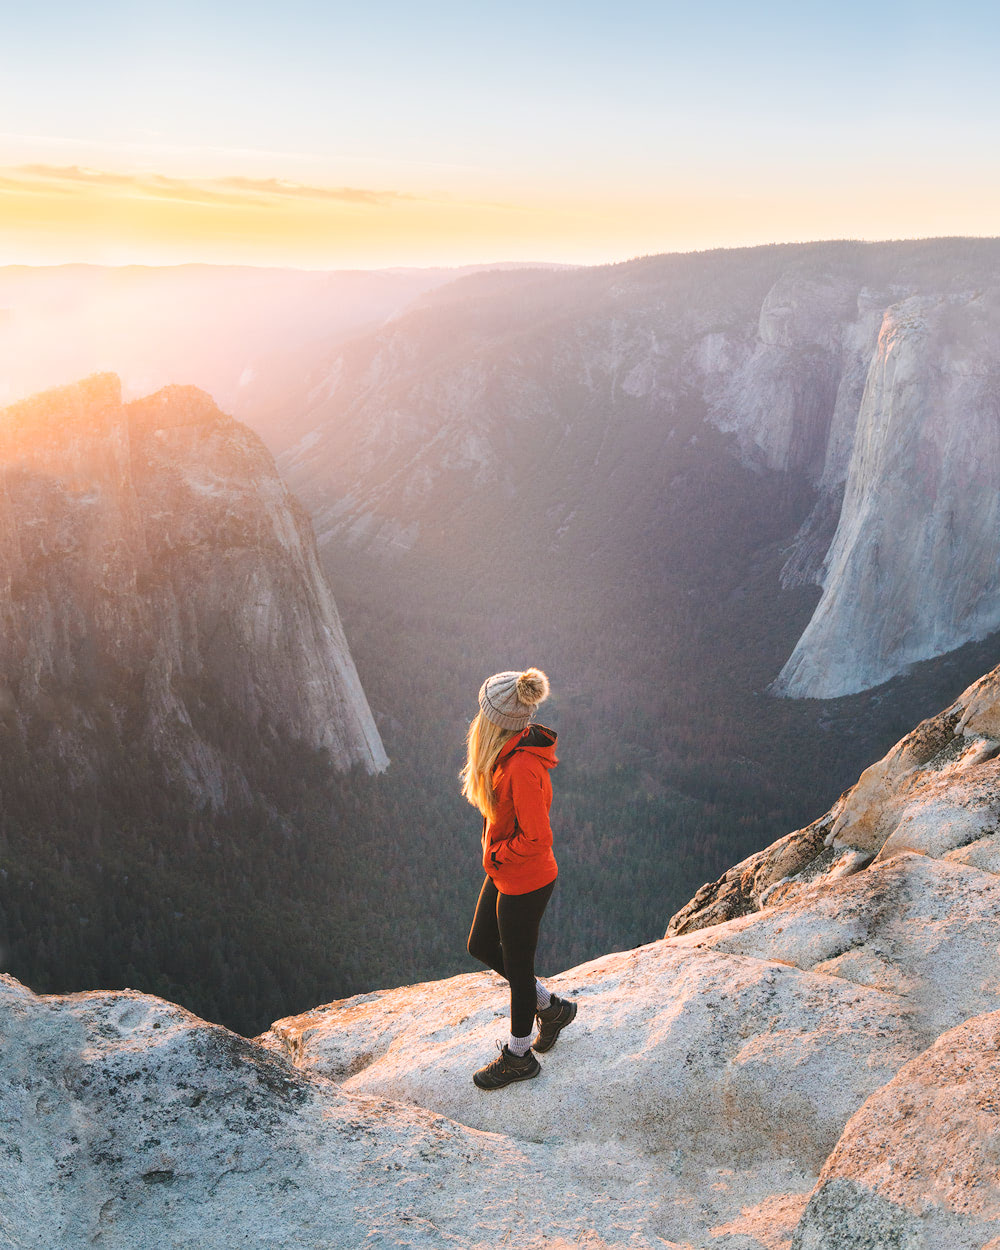 The Ultimate Guide to Exploring Yosemite National Park - Taft Point